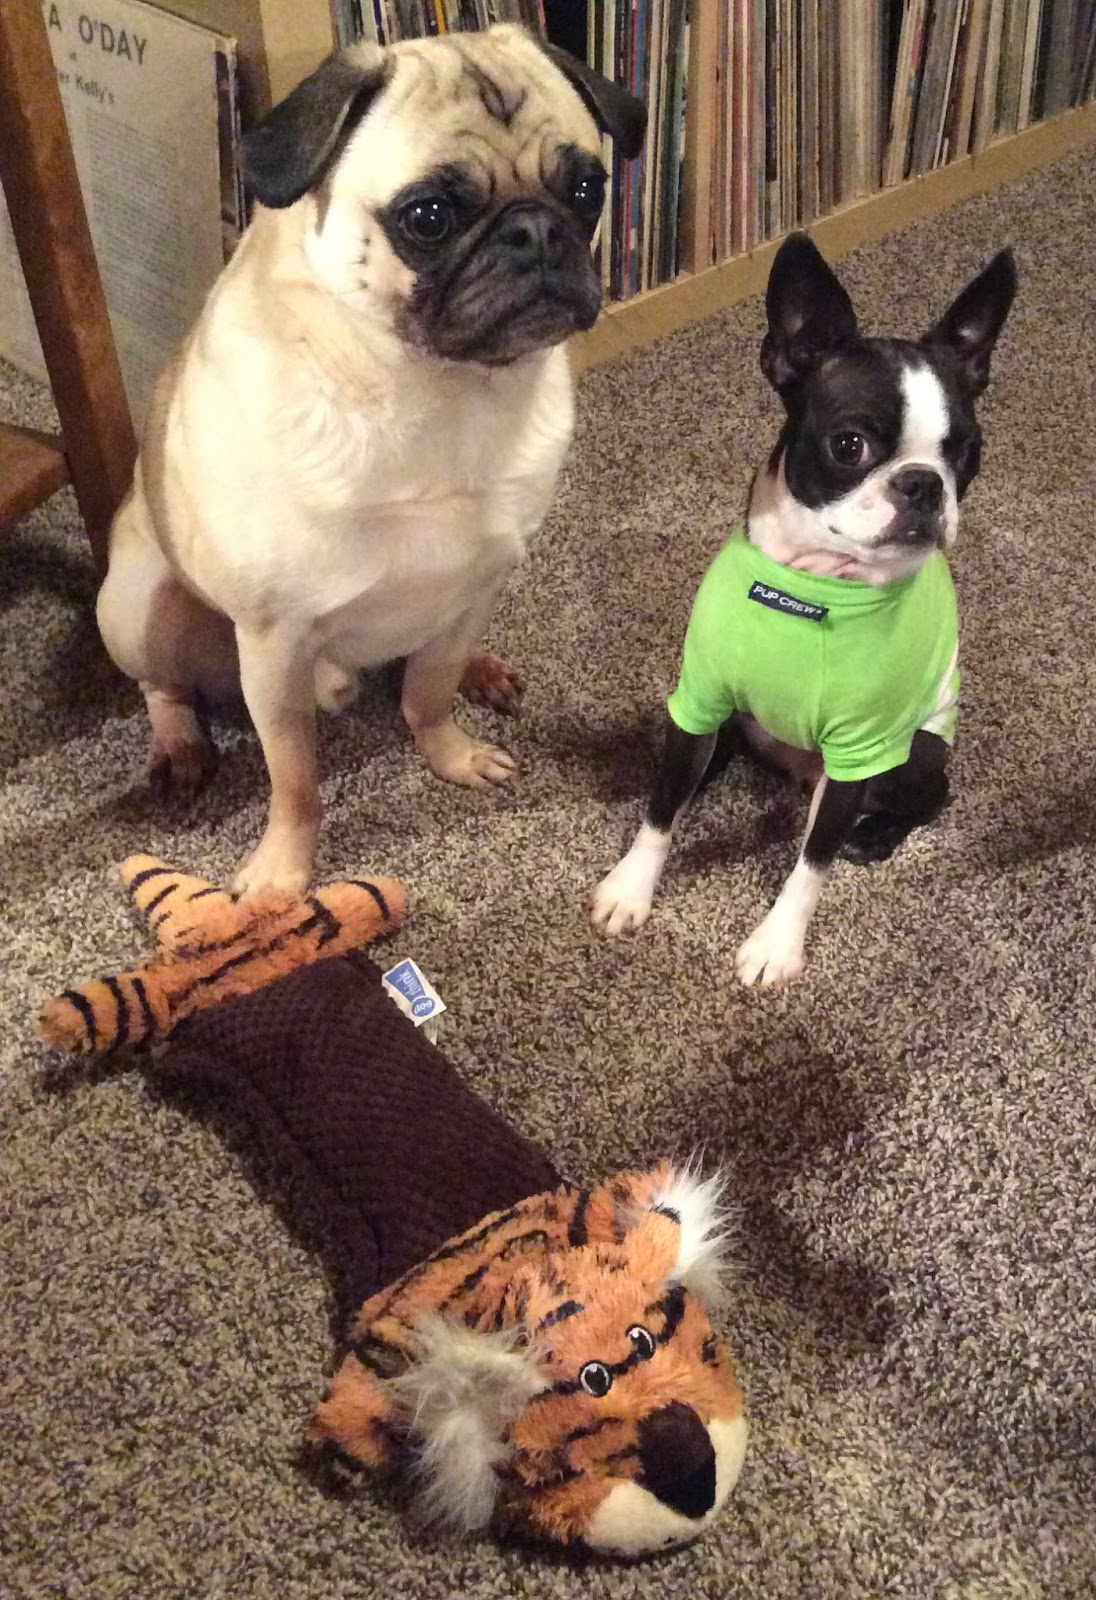 Liam the pug and Sinead the Boston terrier and their toys